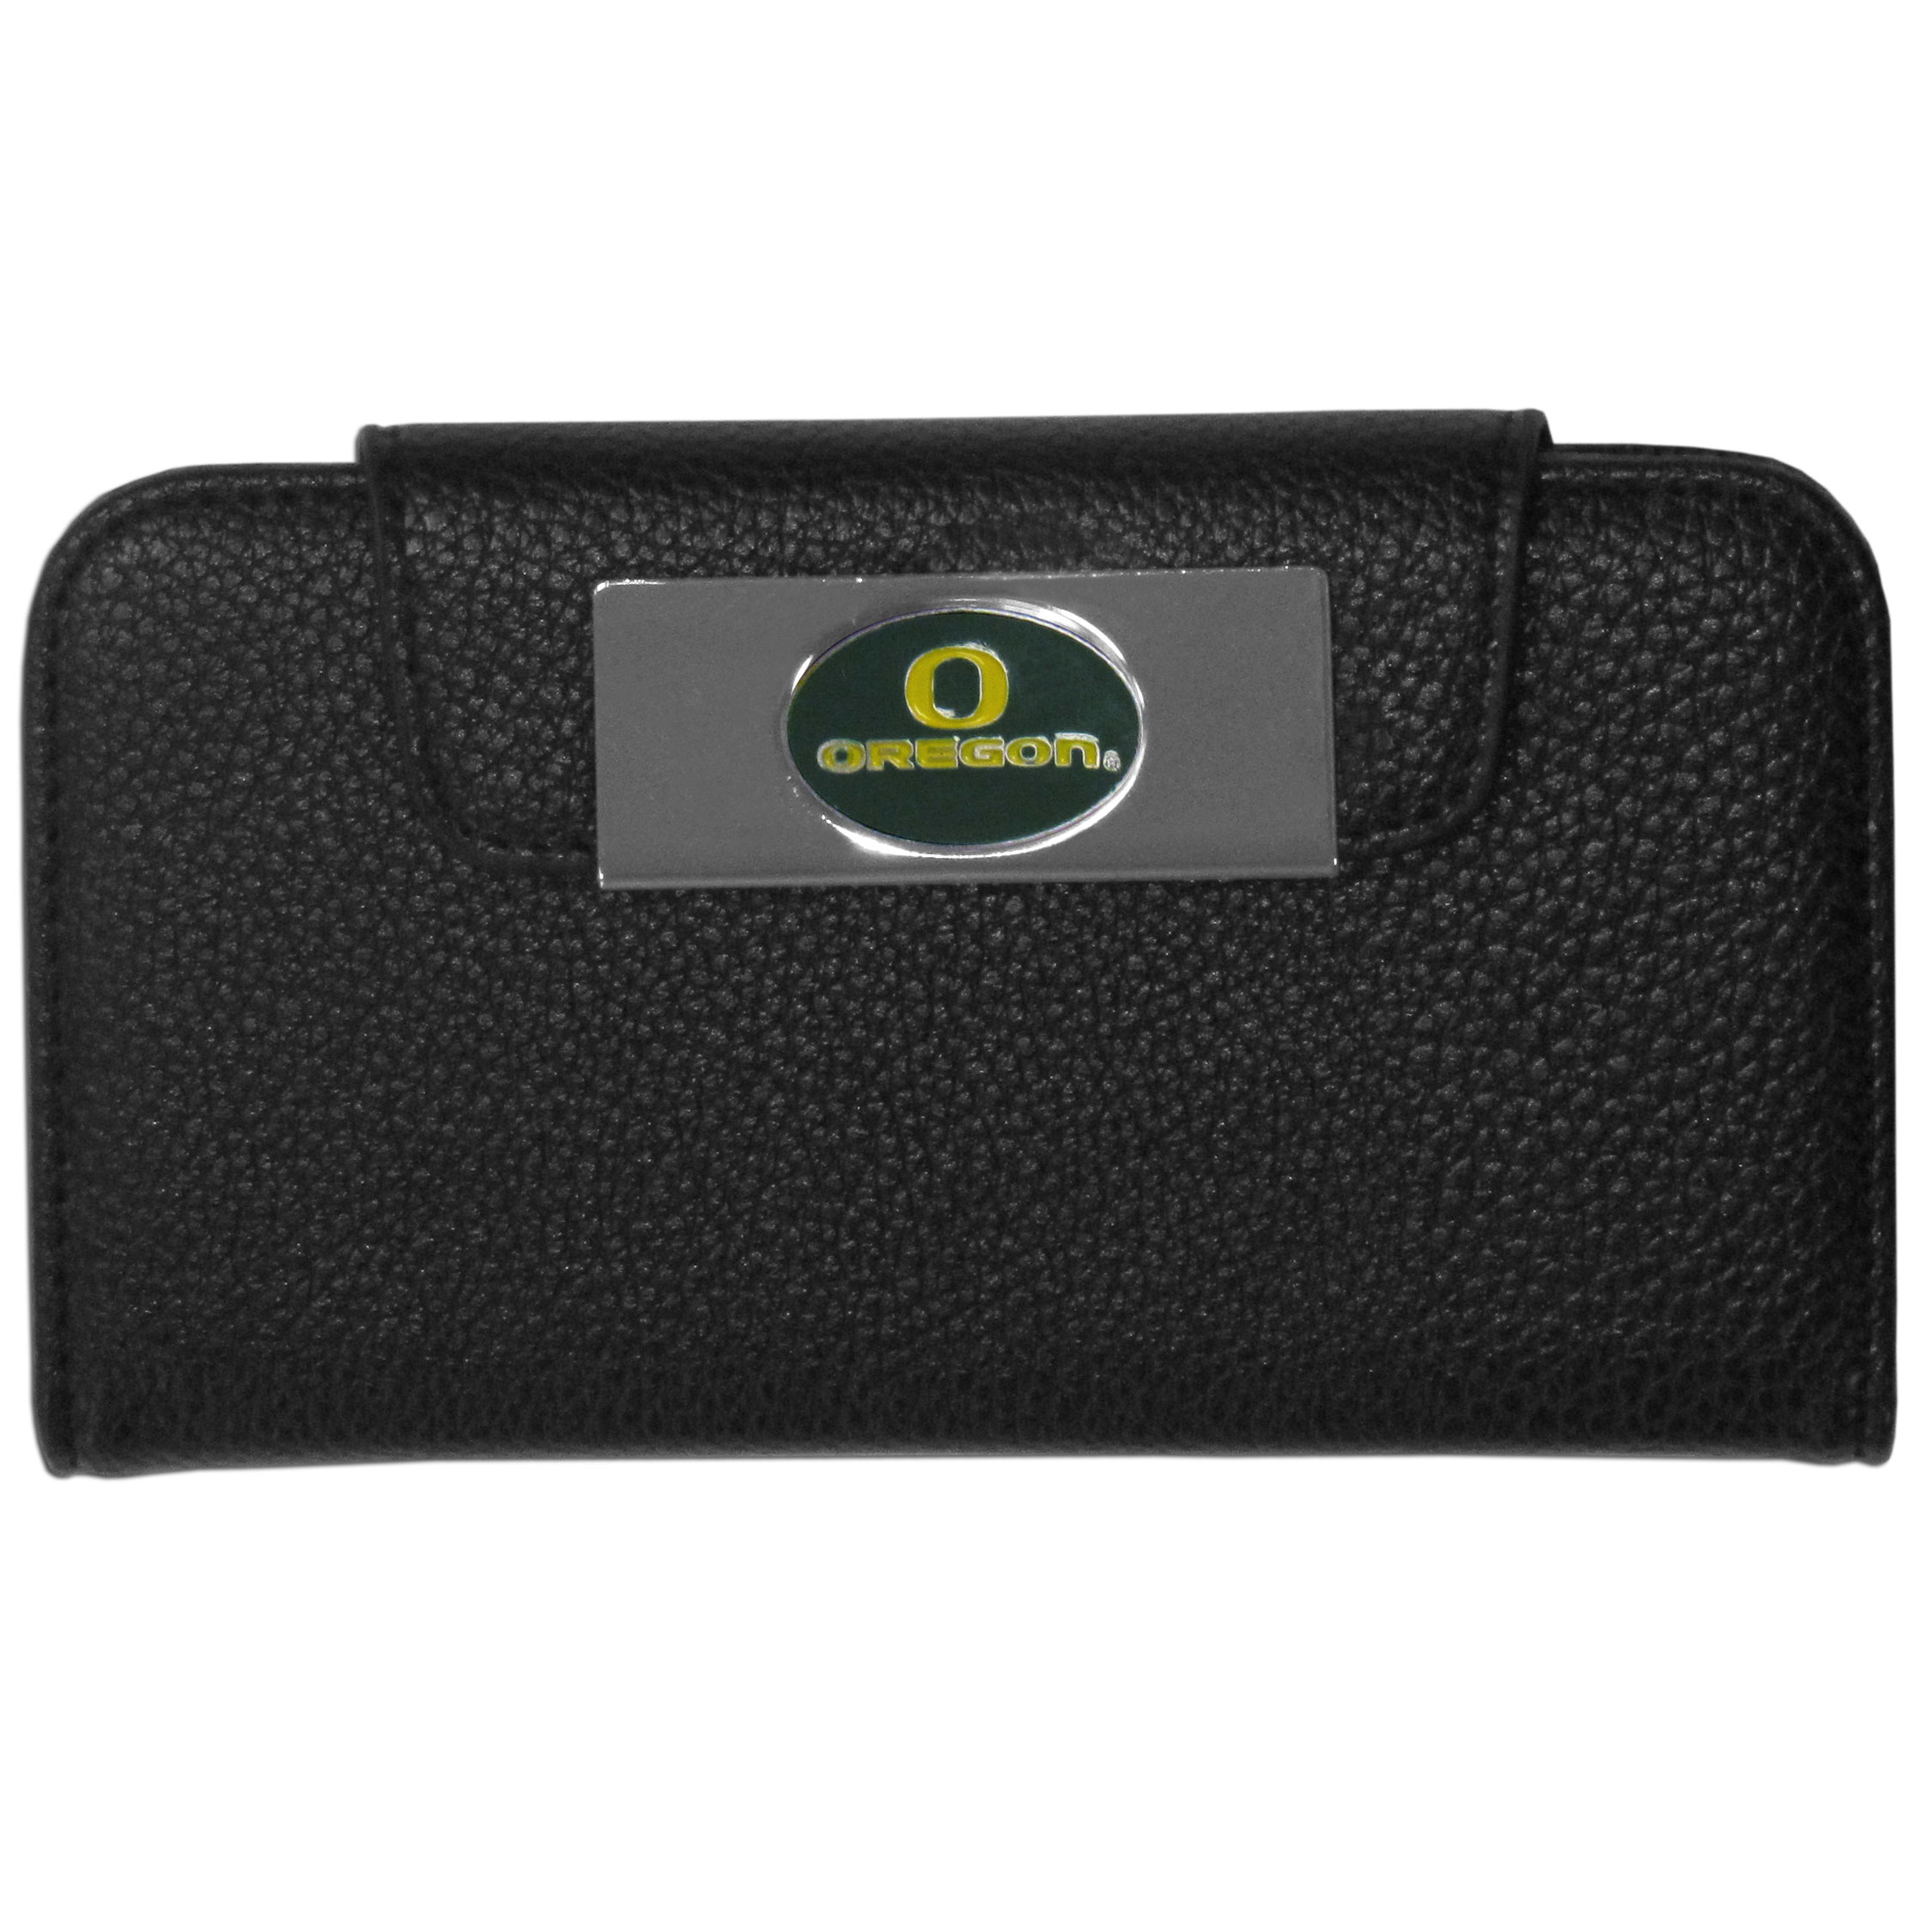 Oregon Ducks iPhone 5/5S Wallet Case - This new & wildly popular case is ideal for those who like to travel light! The stylish case has an inner hard shell that securely holds your phone while allowing complete access to the phone's functionality. The flip cover has slots for credit cards, business cards and identification. The magnetic flip cover has a metal Oregon Ducks emblem on a high polish chrome backing. Fits the iPhone 5/5S